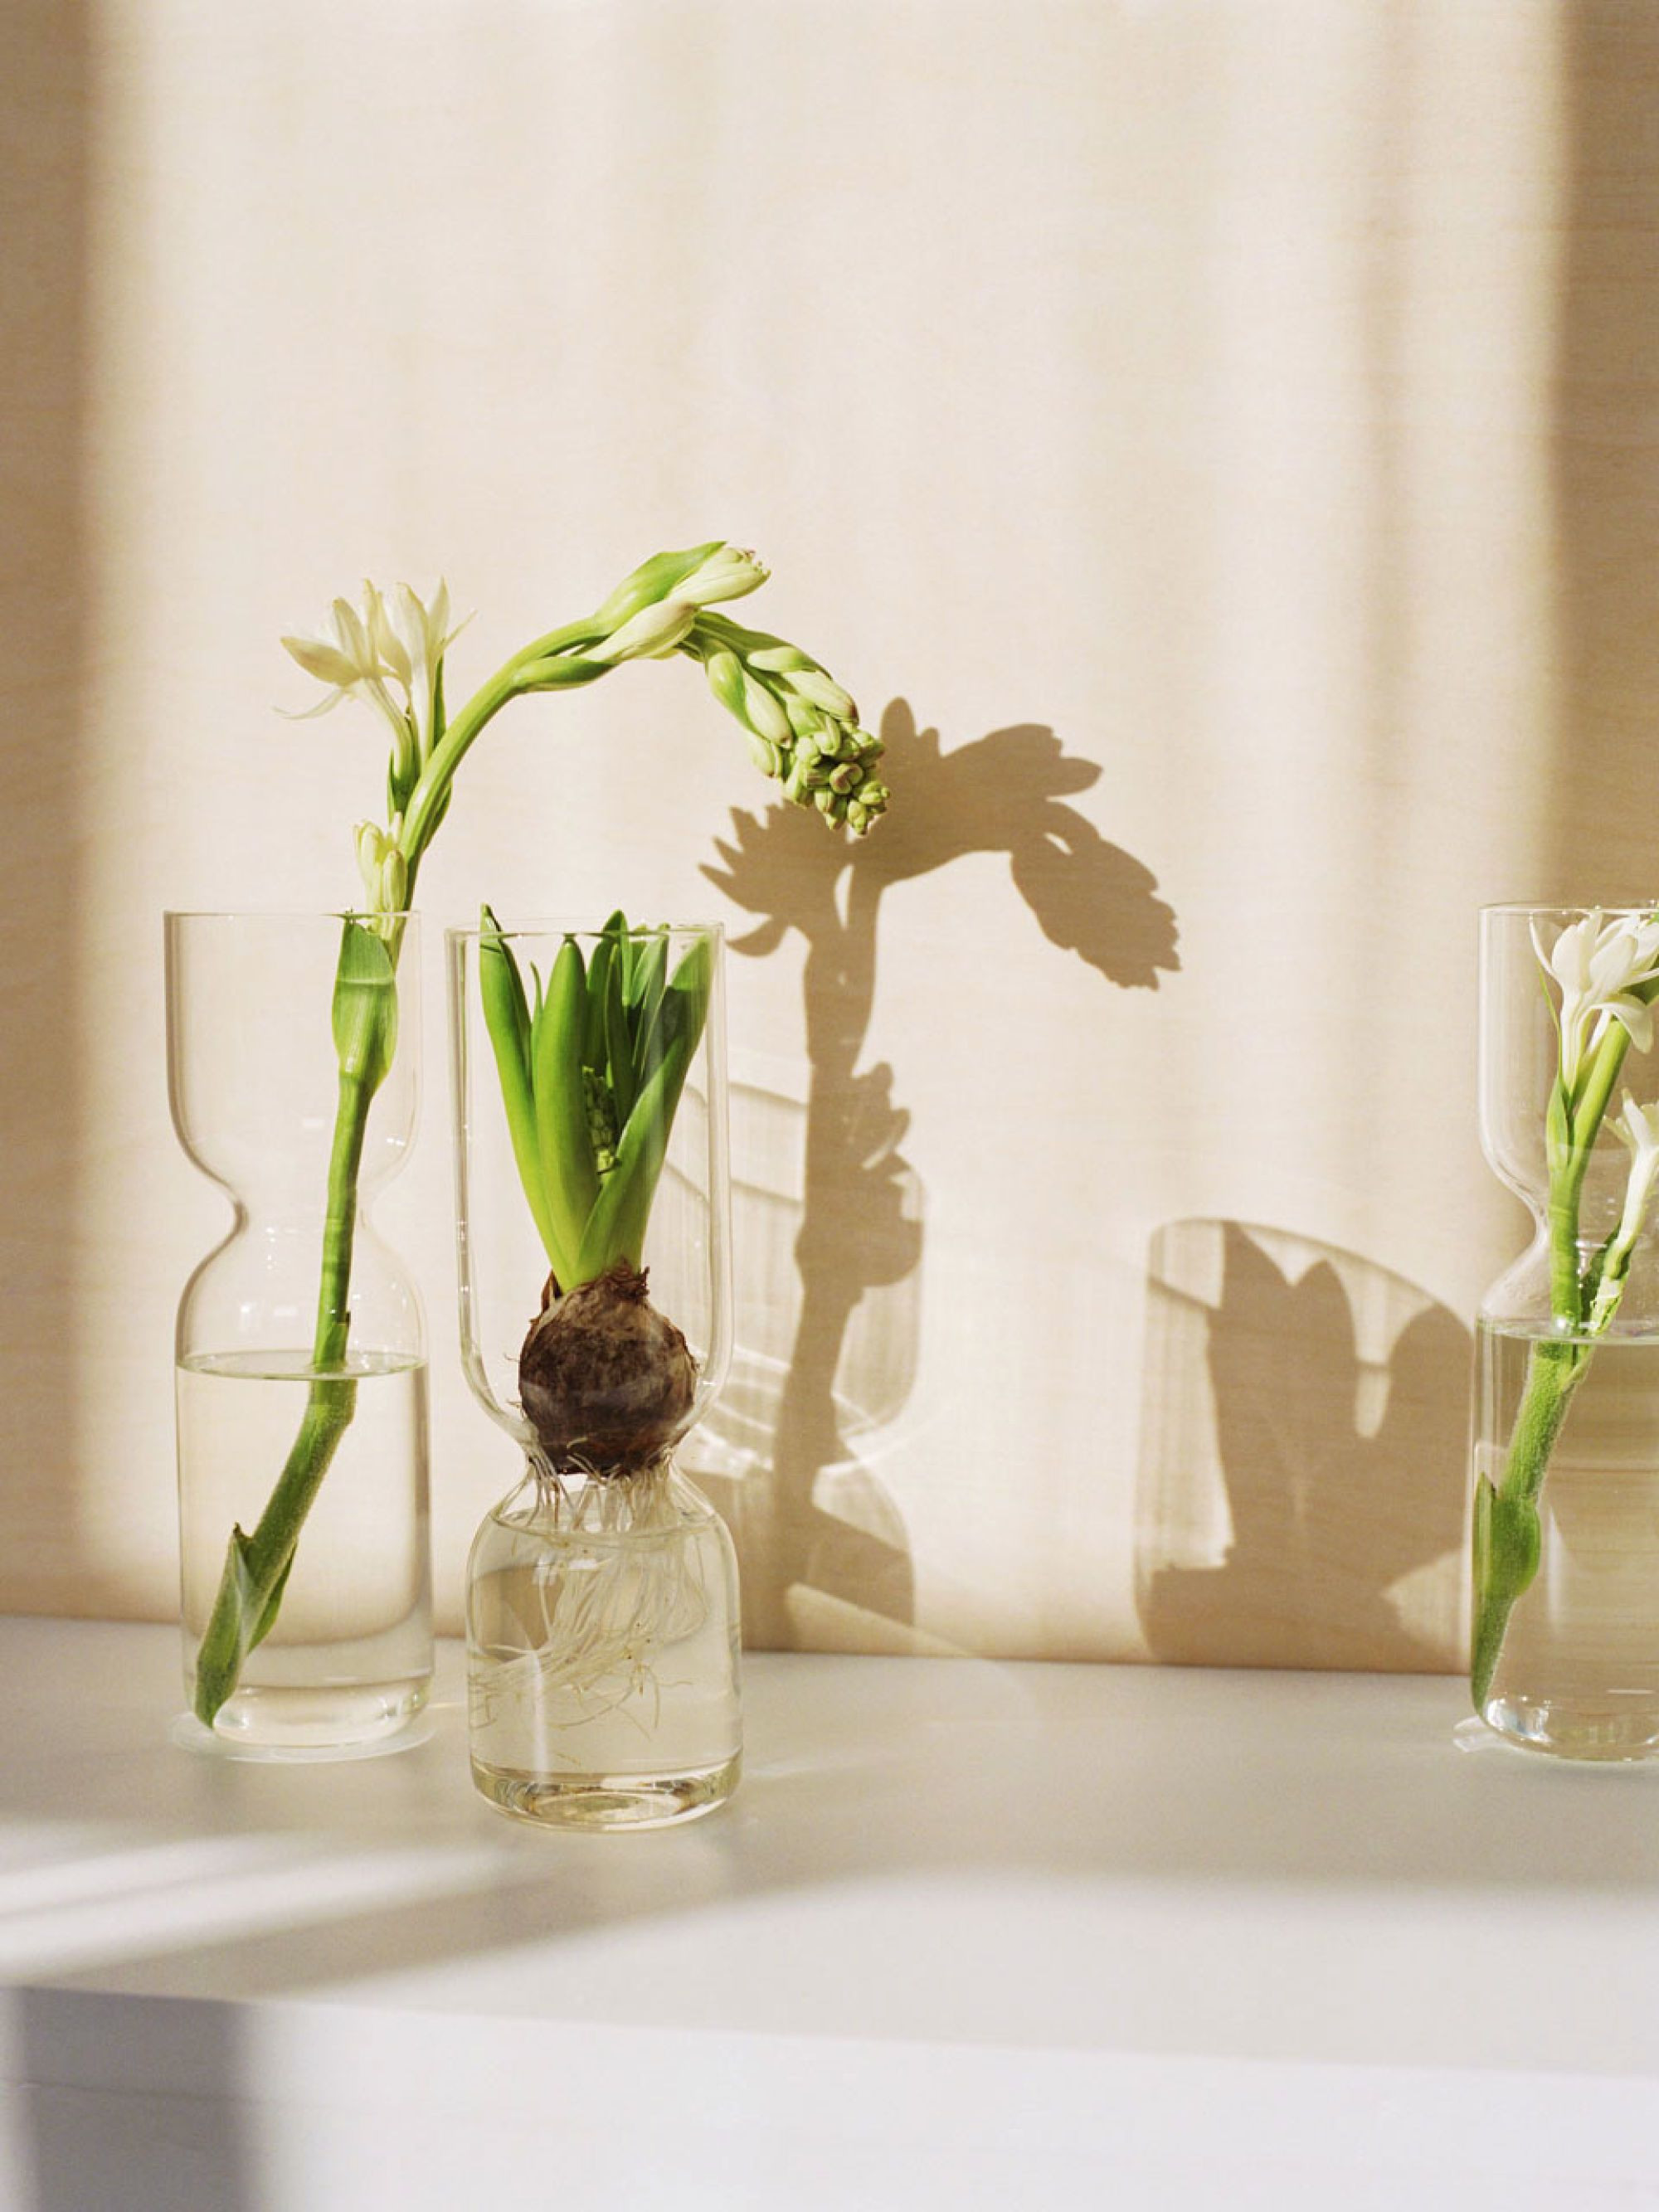 26 Elegant Narrow Neck Glass Vase 2021 free download narrow neck glass vase of p styletext align justifywith a design perfect for sprouting with with a design